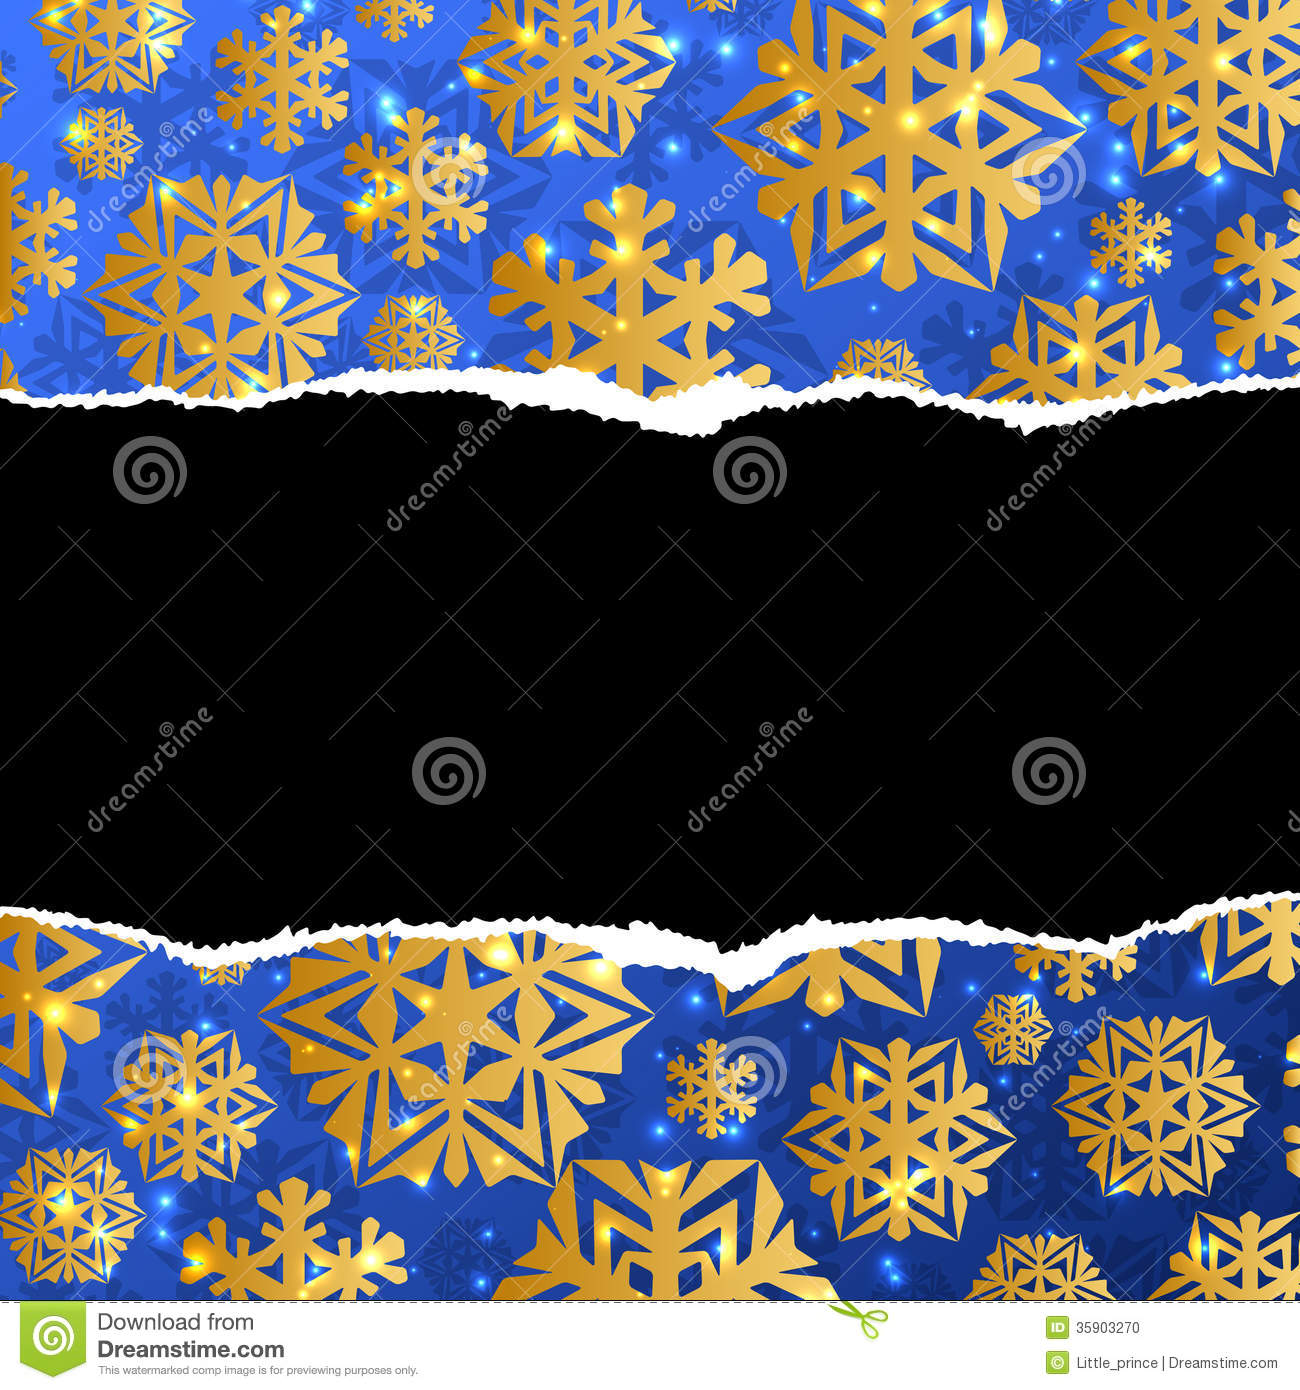 Blue and gold christmas abstract background stock photo for Blue and gold christmas